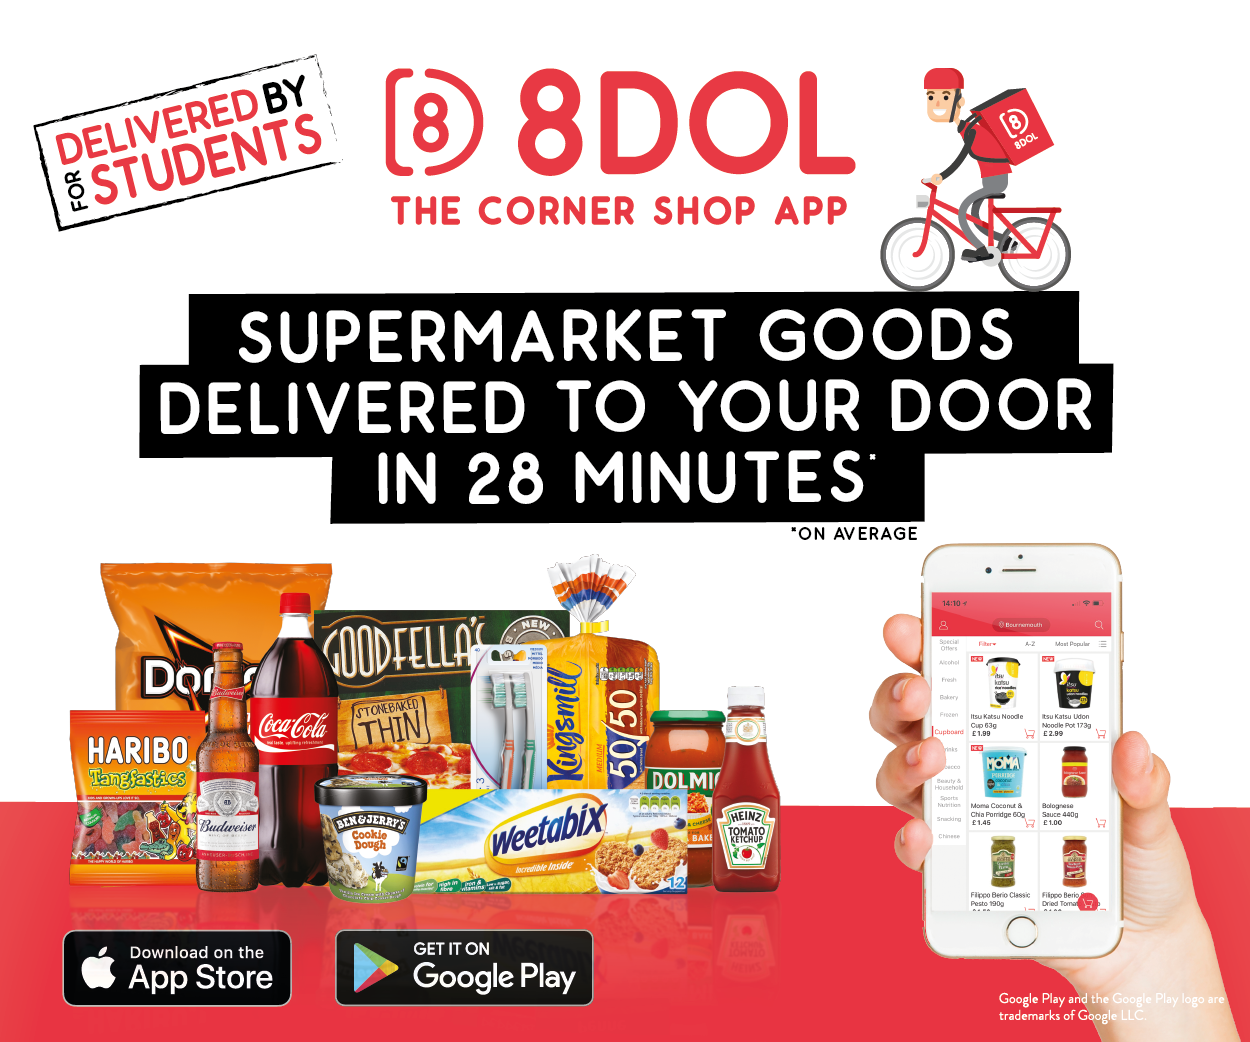 8 Dol the corner shop app